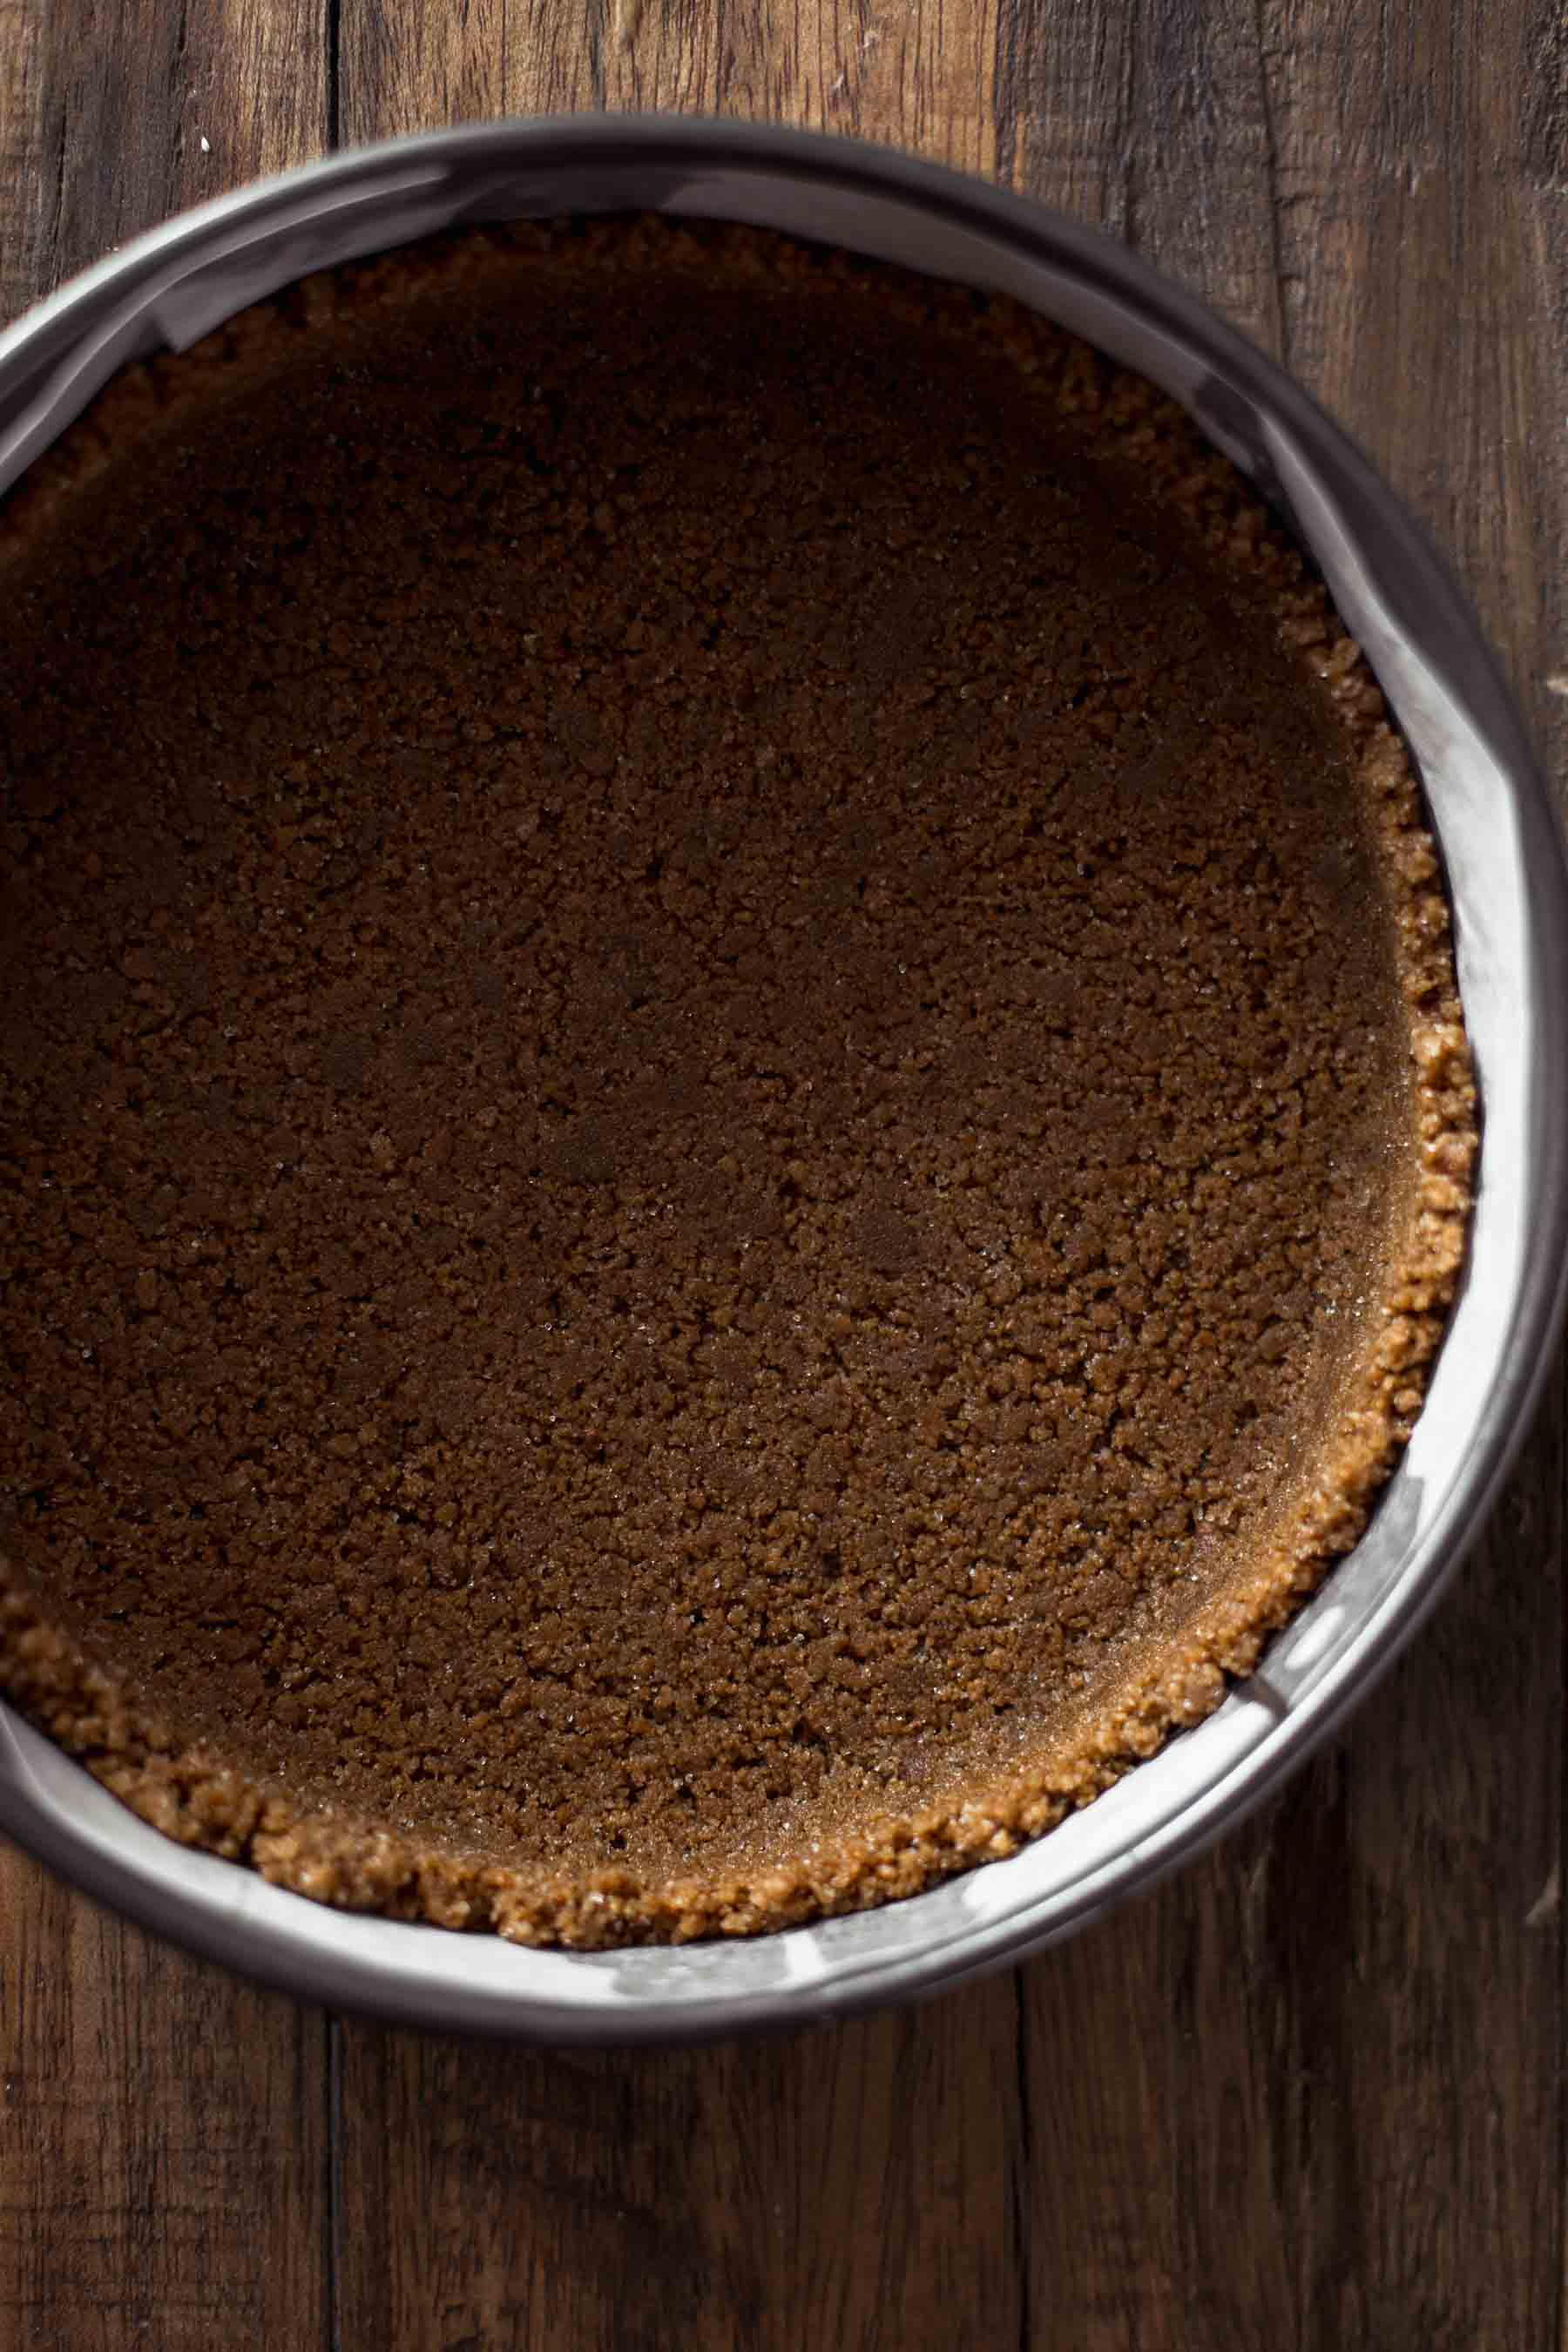 Unbaked gingerbread crust